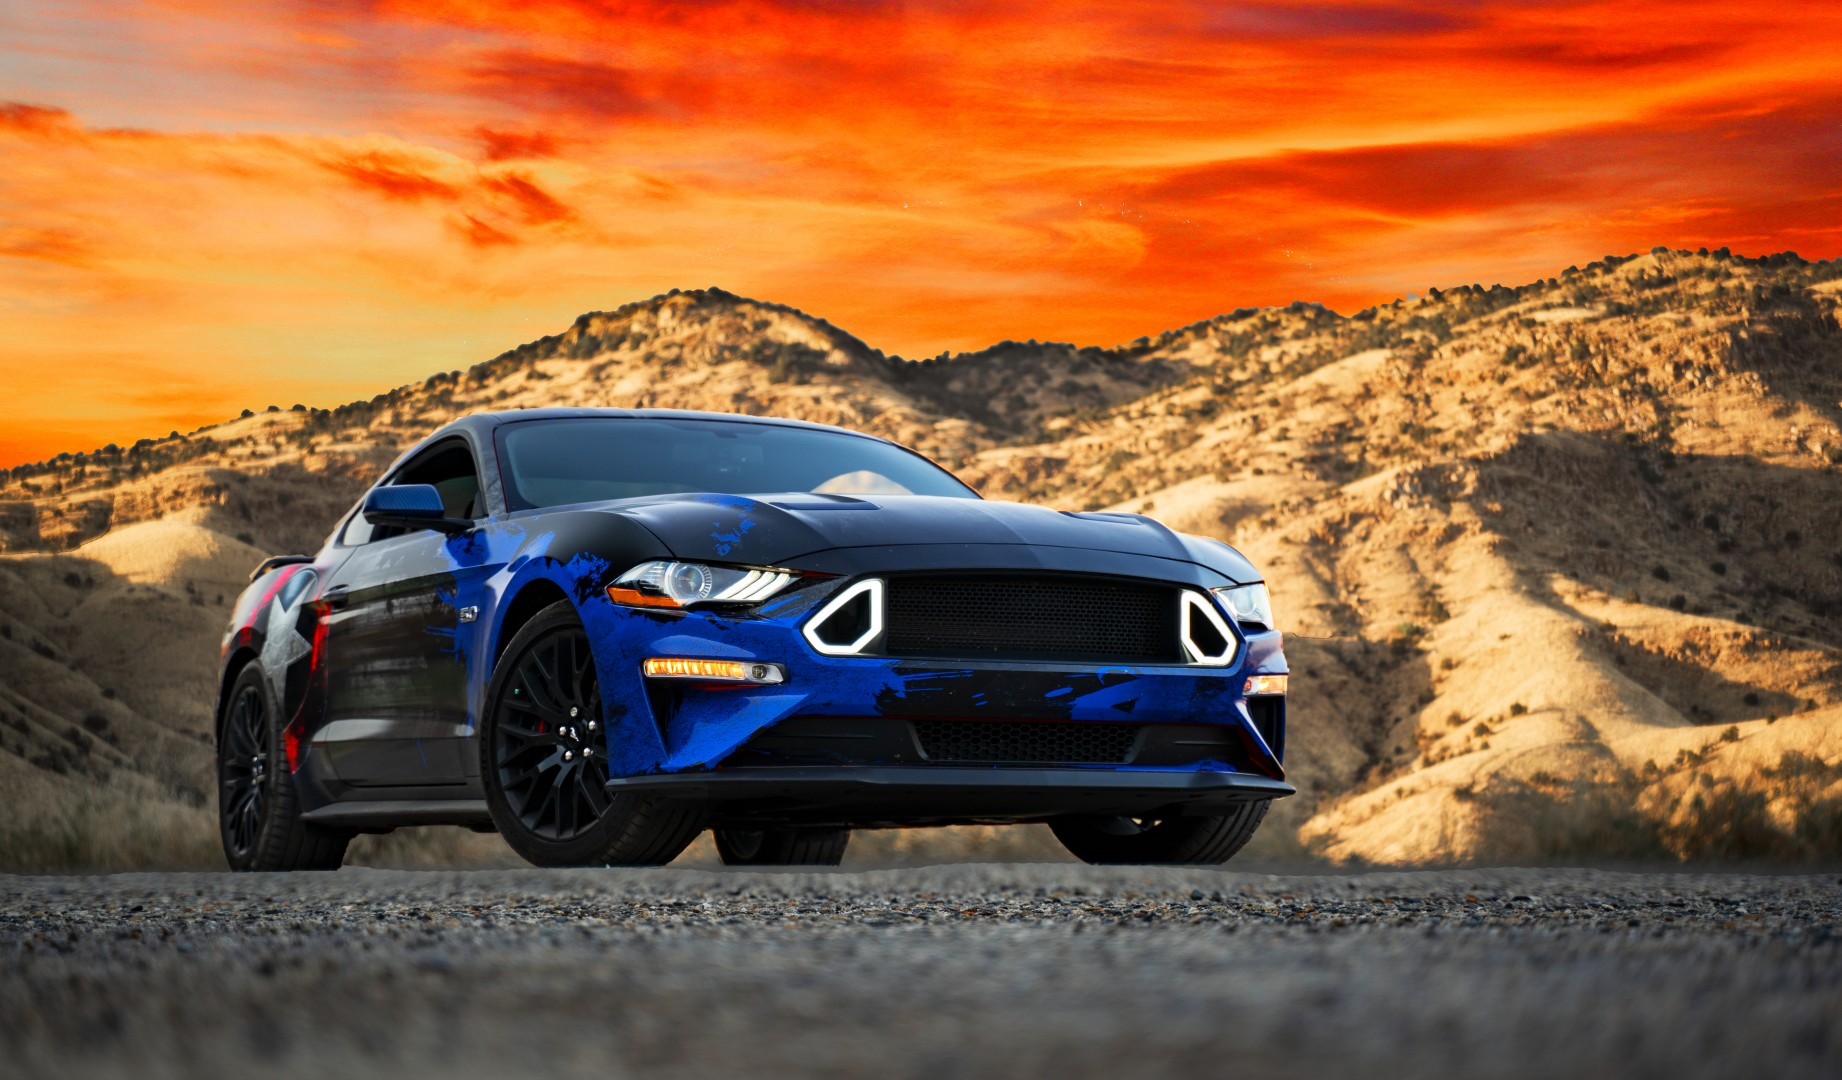 mustang gt turbo ford kit performance twin avenger function factory ground wheel messing capable horse 1200 around power american re